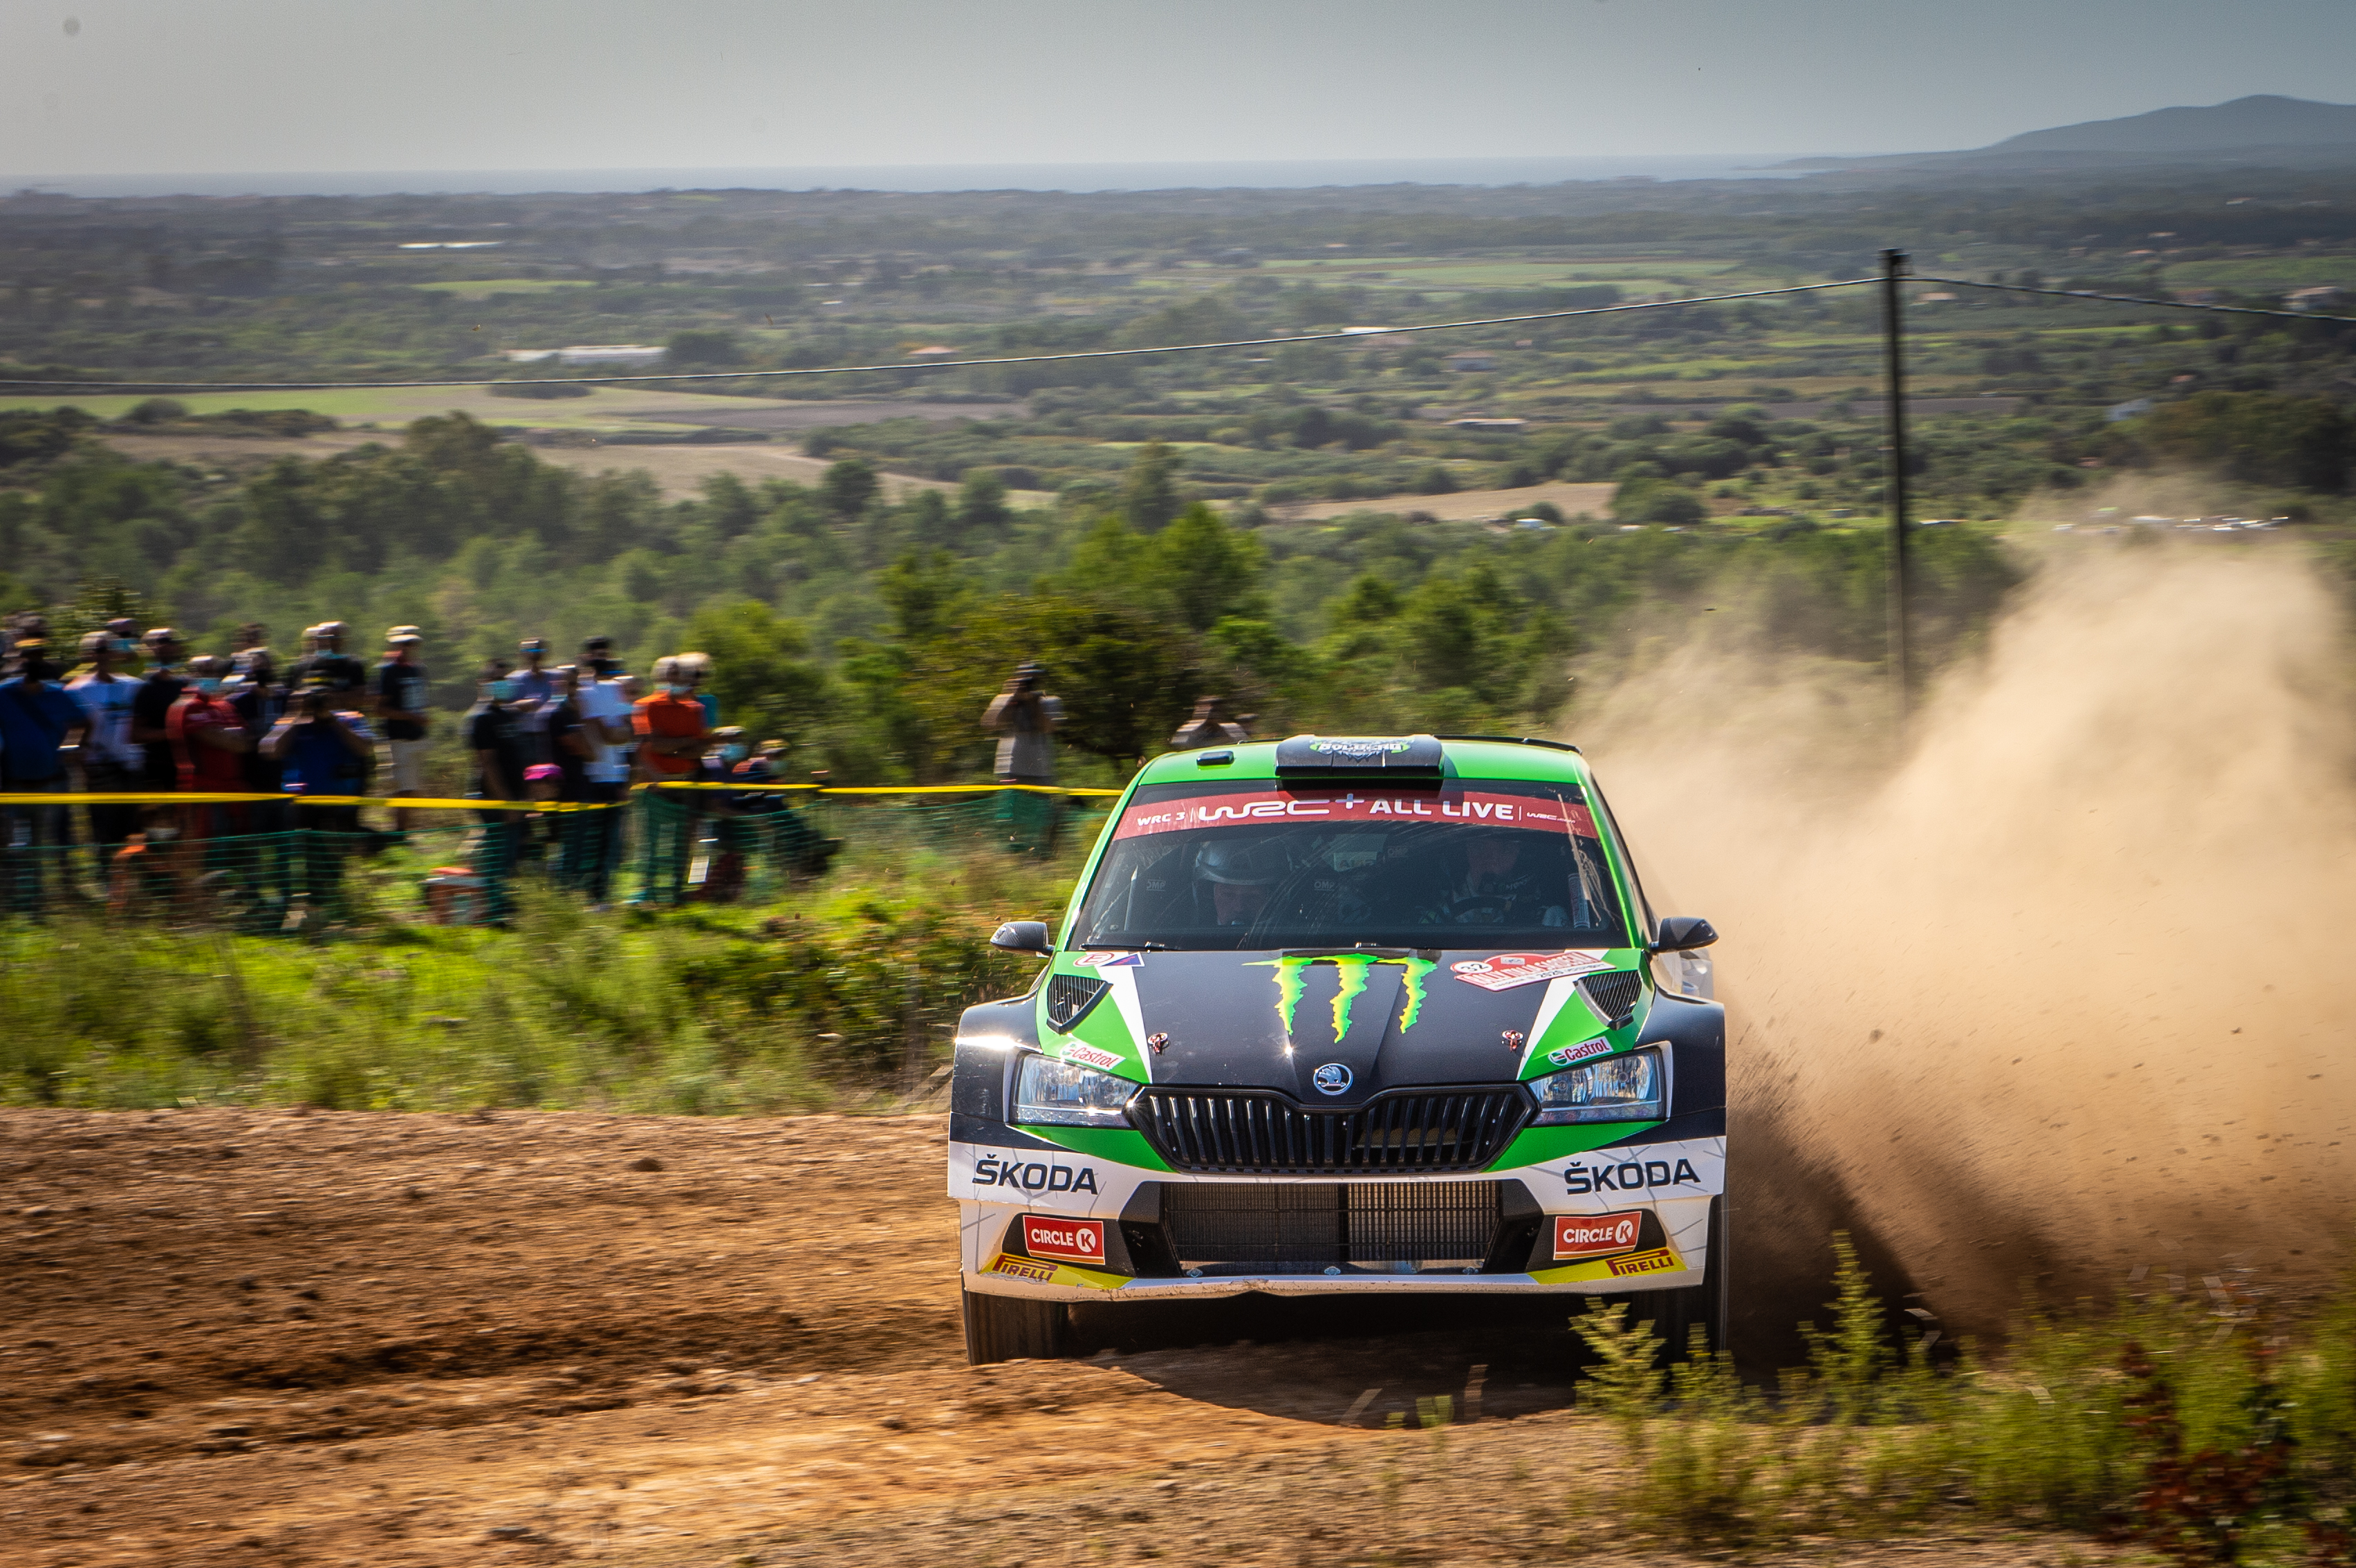 Rally Italia Sardegna: Two SKODA crews on top of WRC2 and WRC3 after tough first leg - Image 1